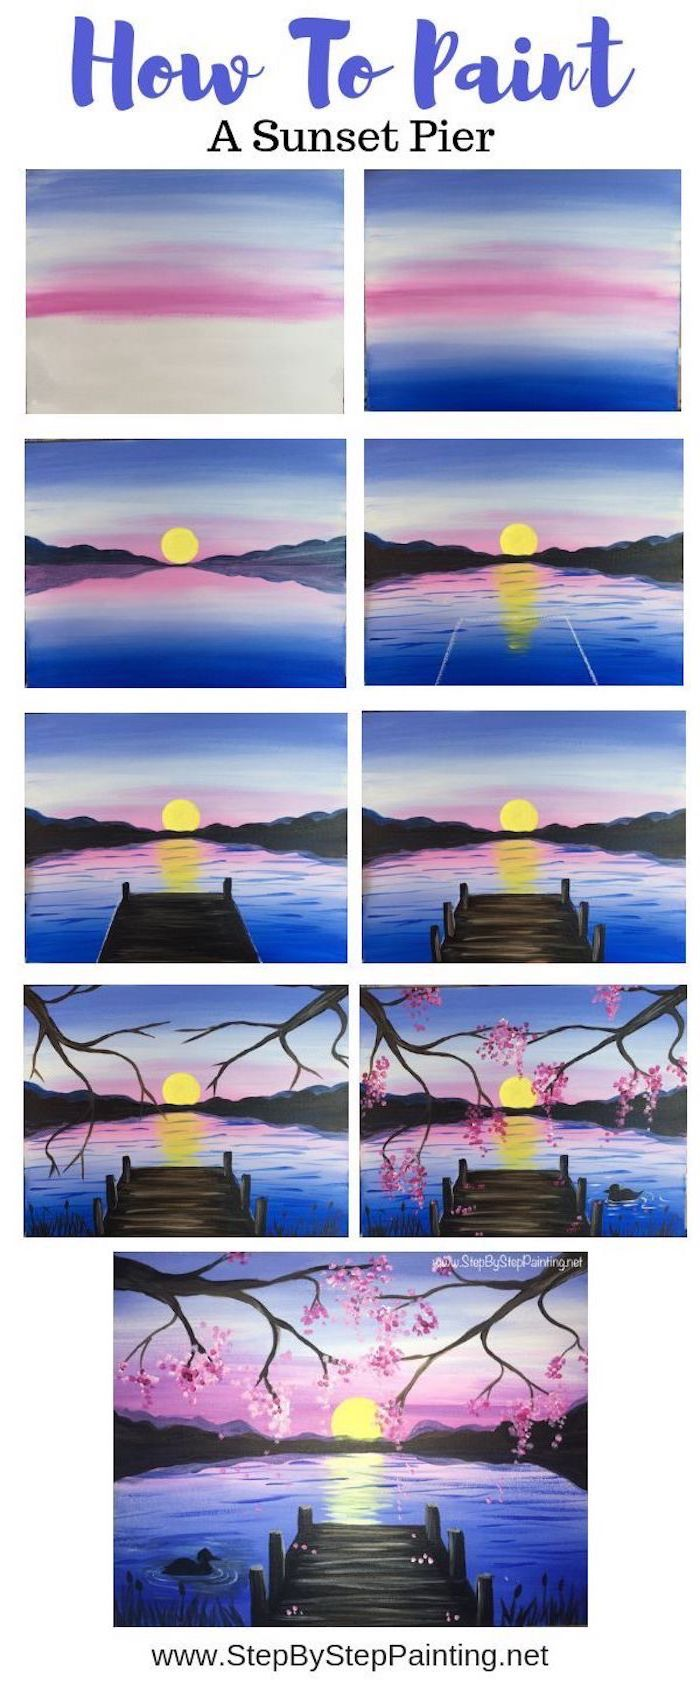 how to paint a sunset pier, photo collage of step by step diy tutorial, acrylic painting techniques